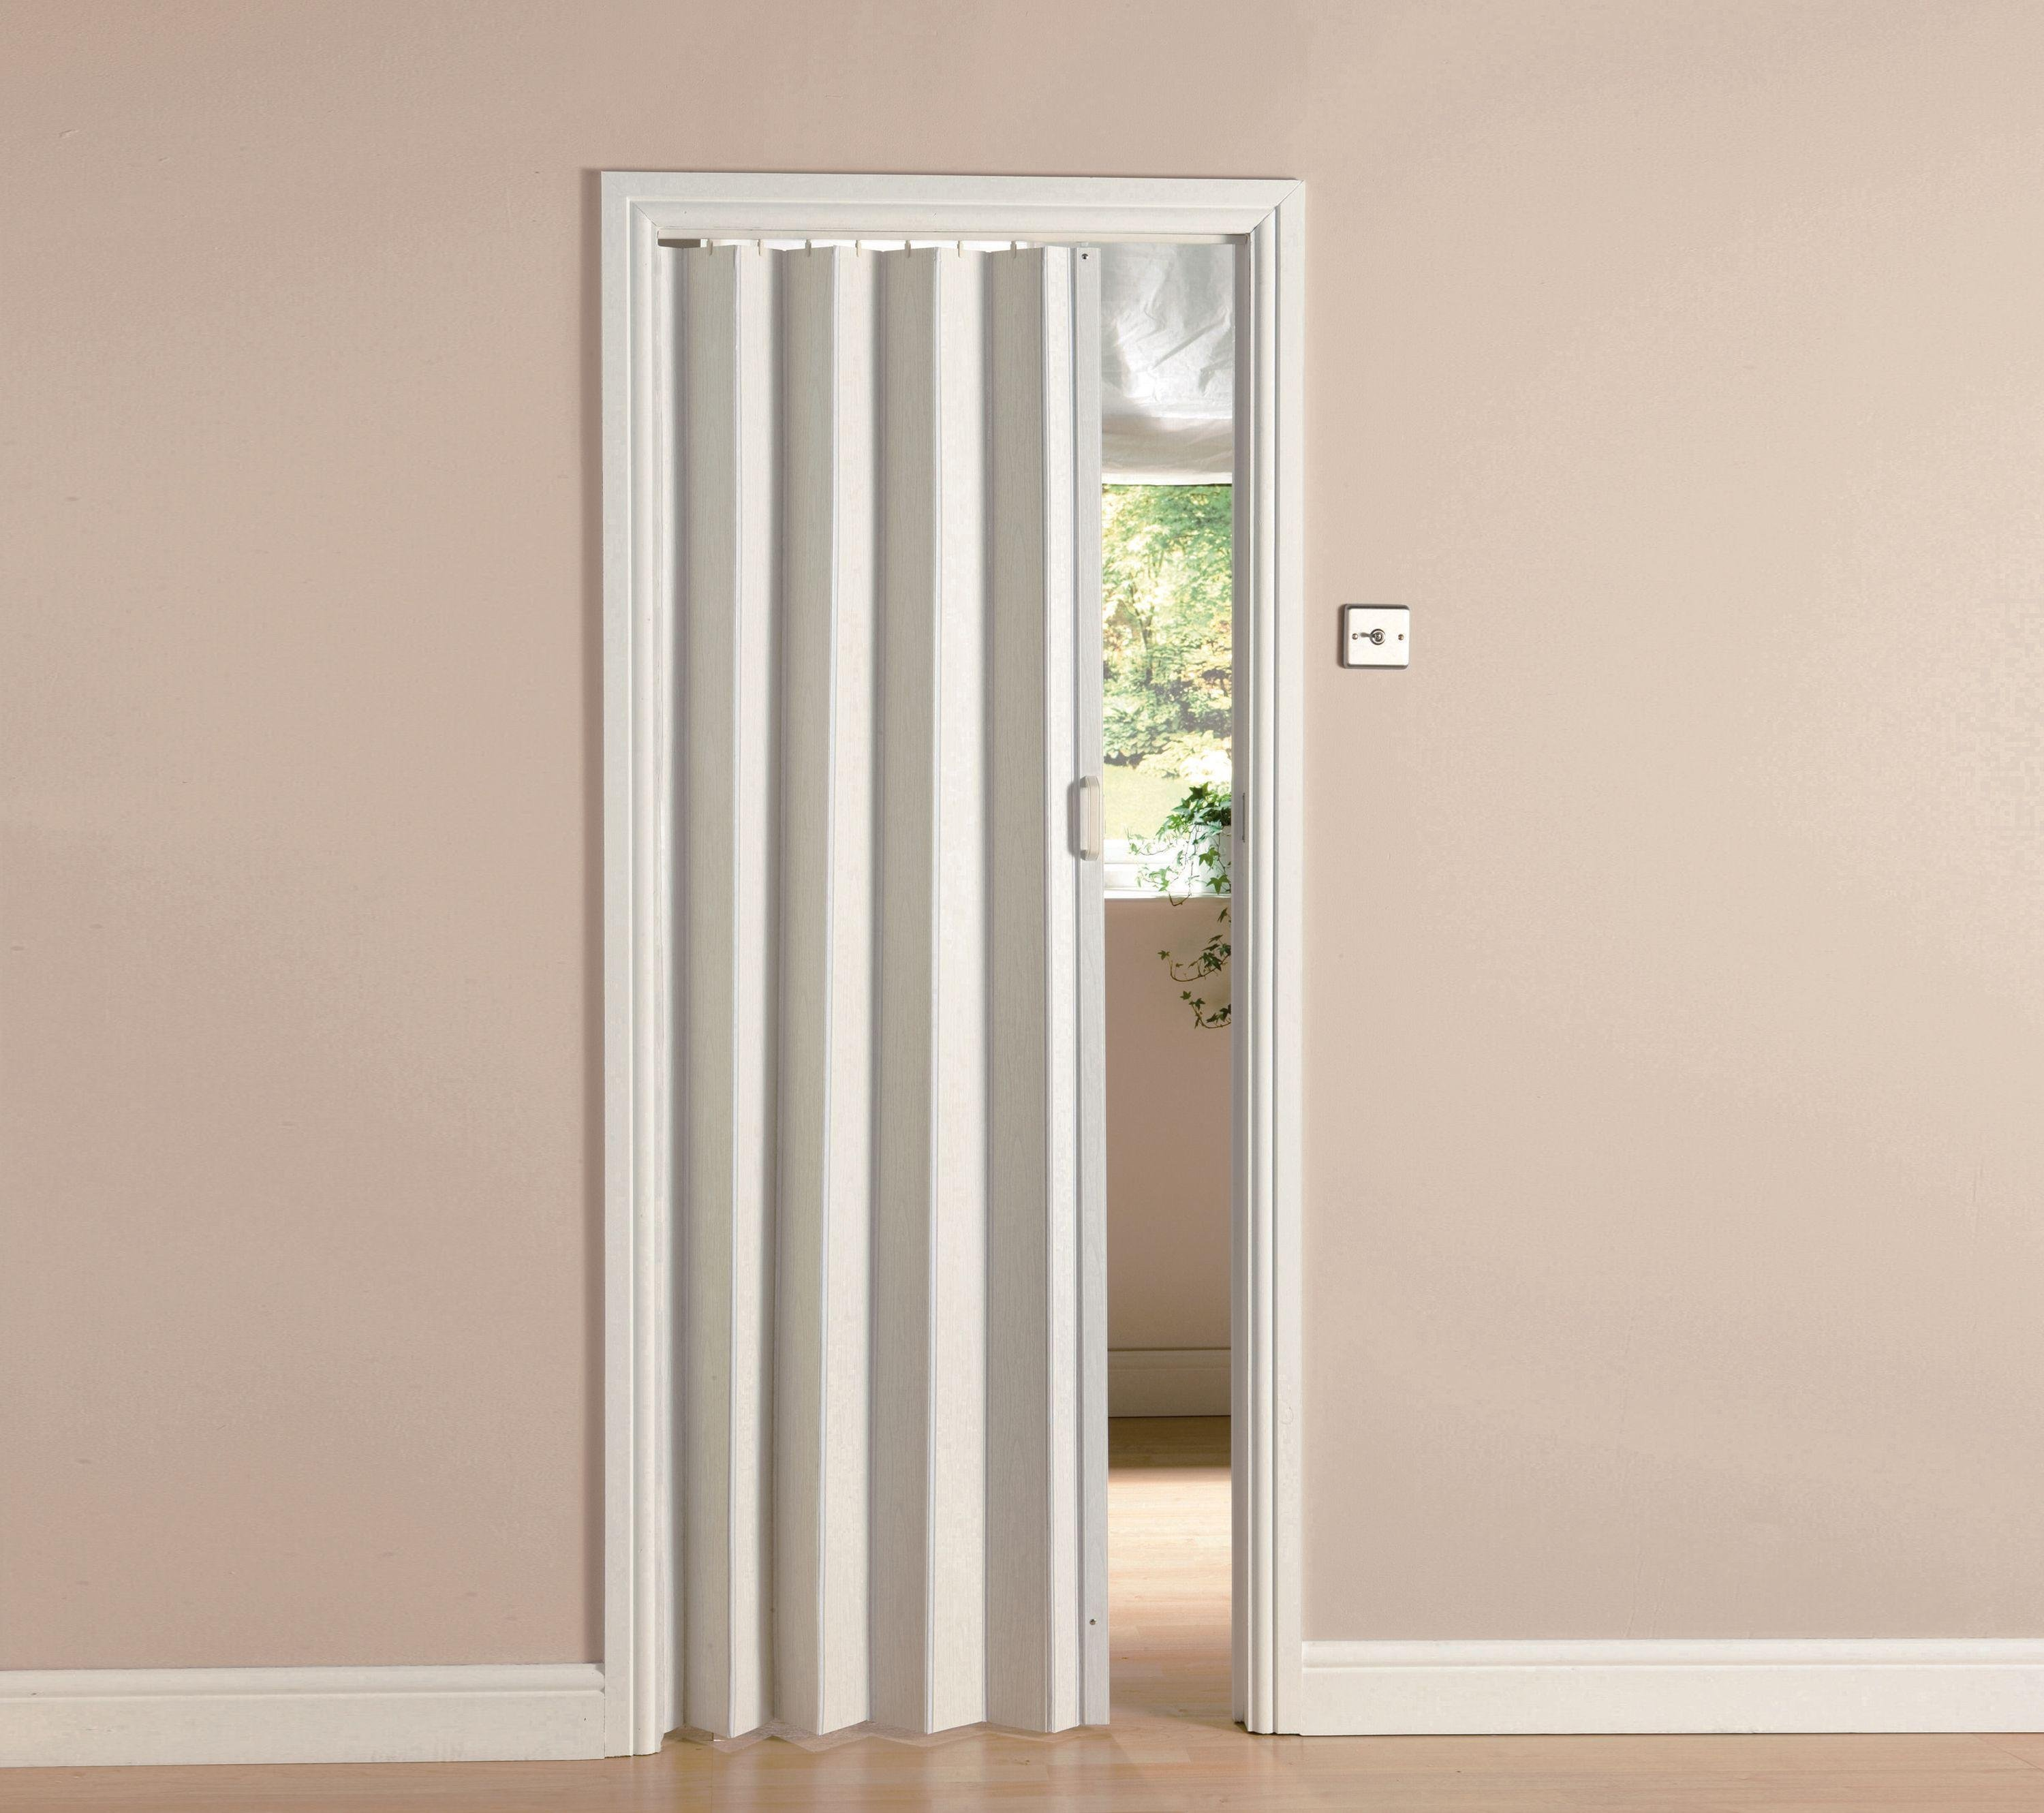 Argos - White Oak Effect Double Skin - Door